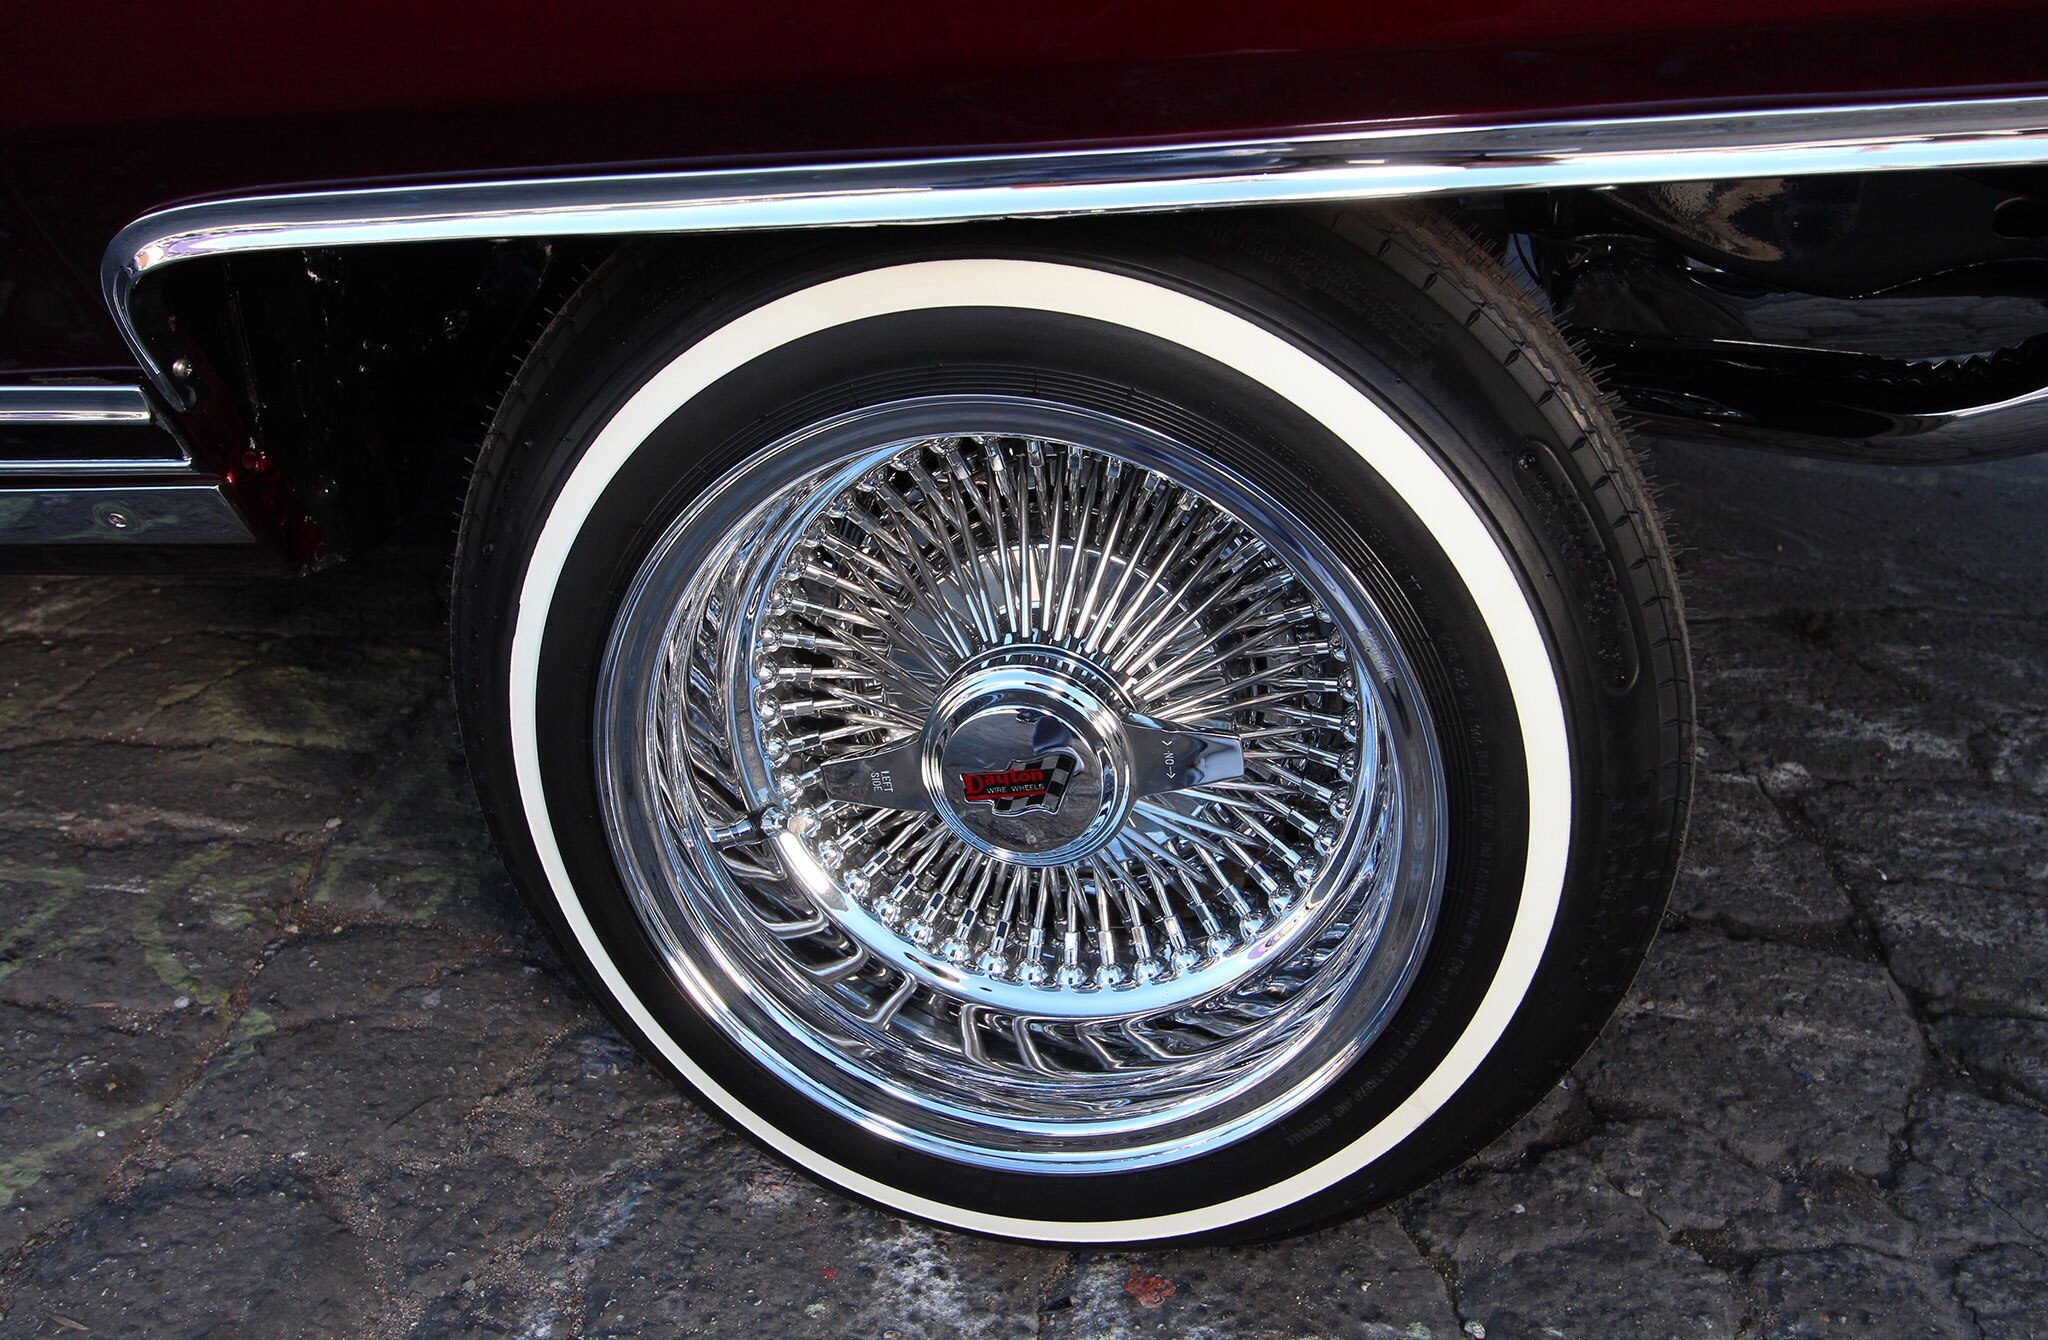 Lowrider Rims And Tires >> 1970 Chevrolet Monte Carlo - The Return Of The Monte Carlo